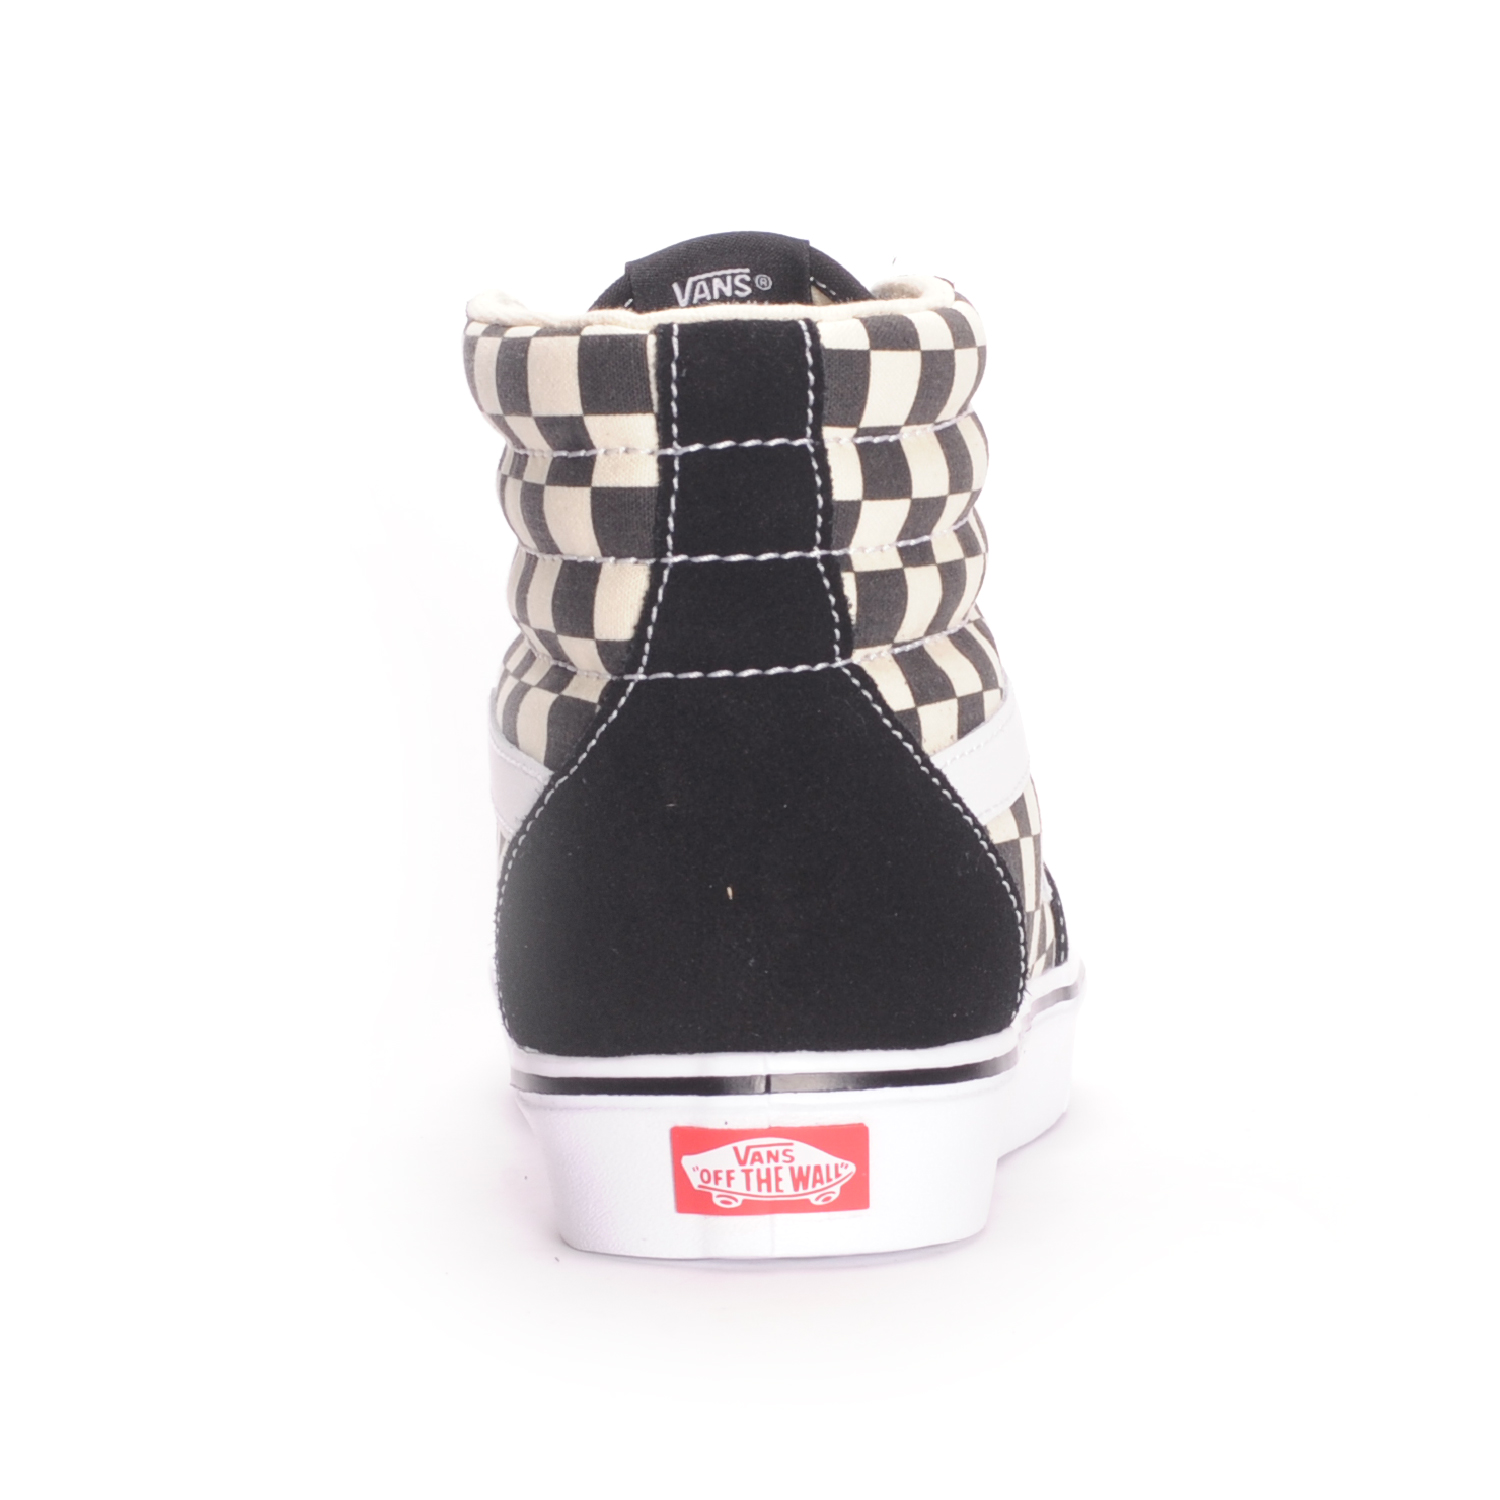 Vans-Sk8-Hi-Lite-Checkerboard-Black-White-Men-039-s-Skate-Shoes thumbnail 3